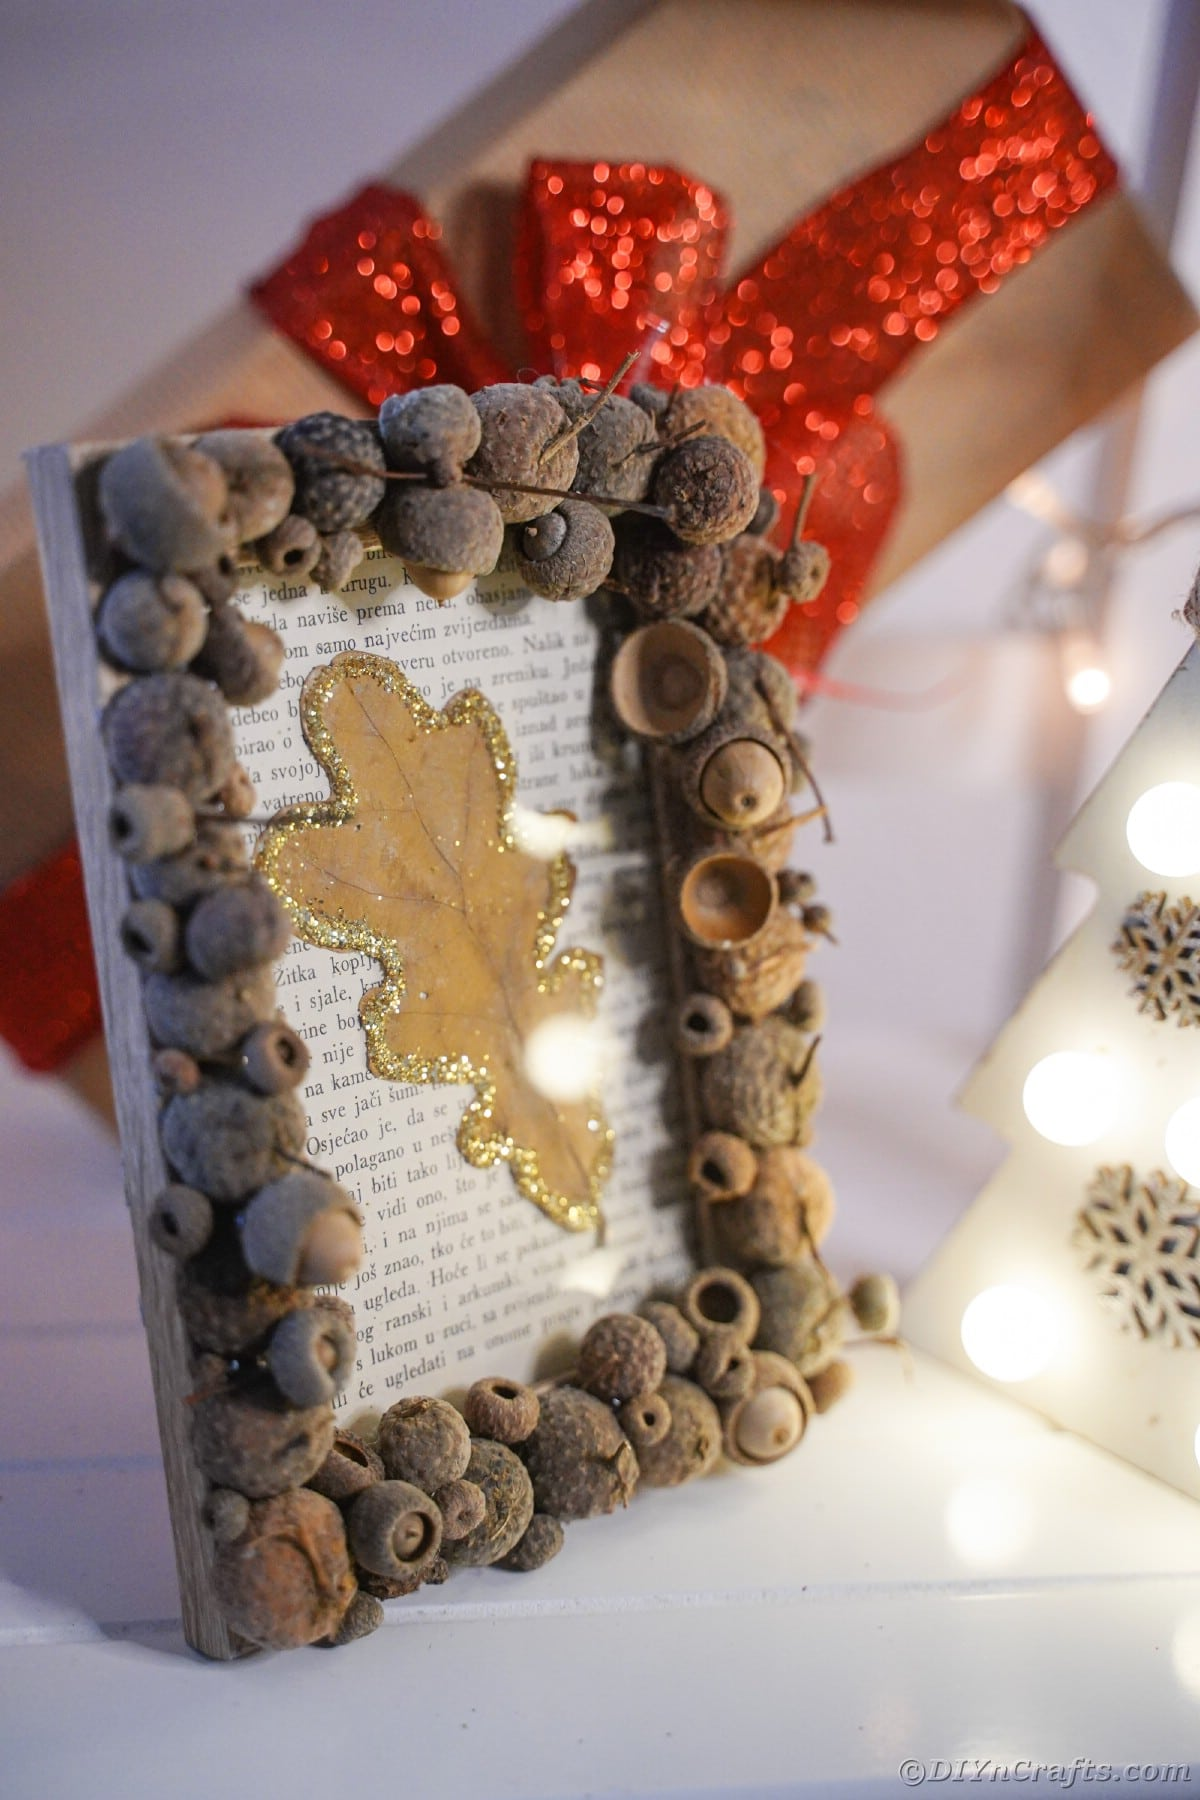 Rustic picture frame on white table with gifts